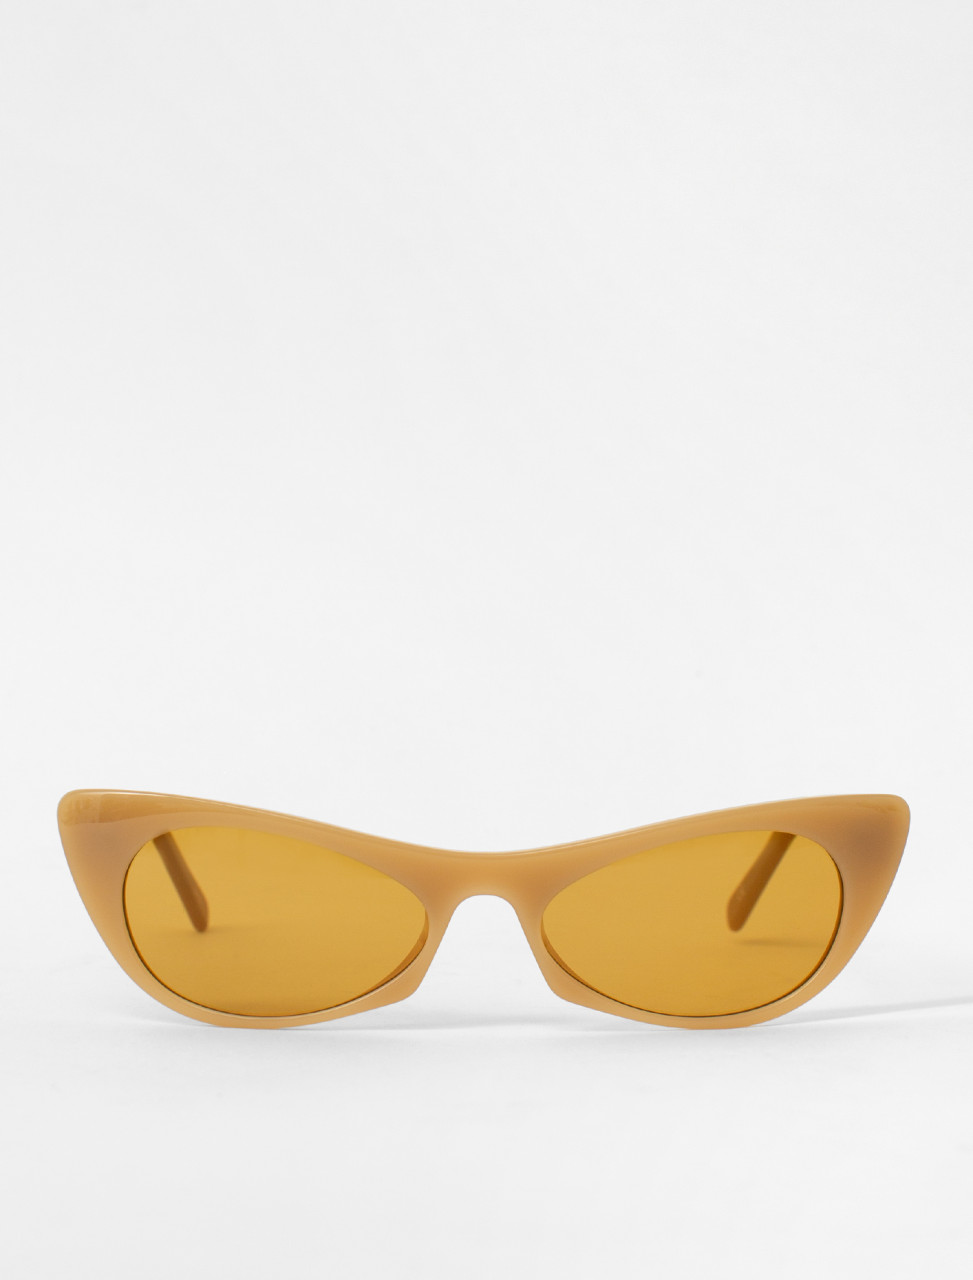 Ezra Sunglasses